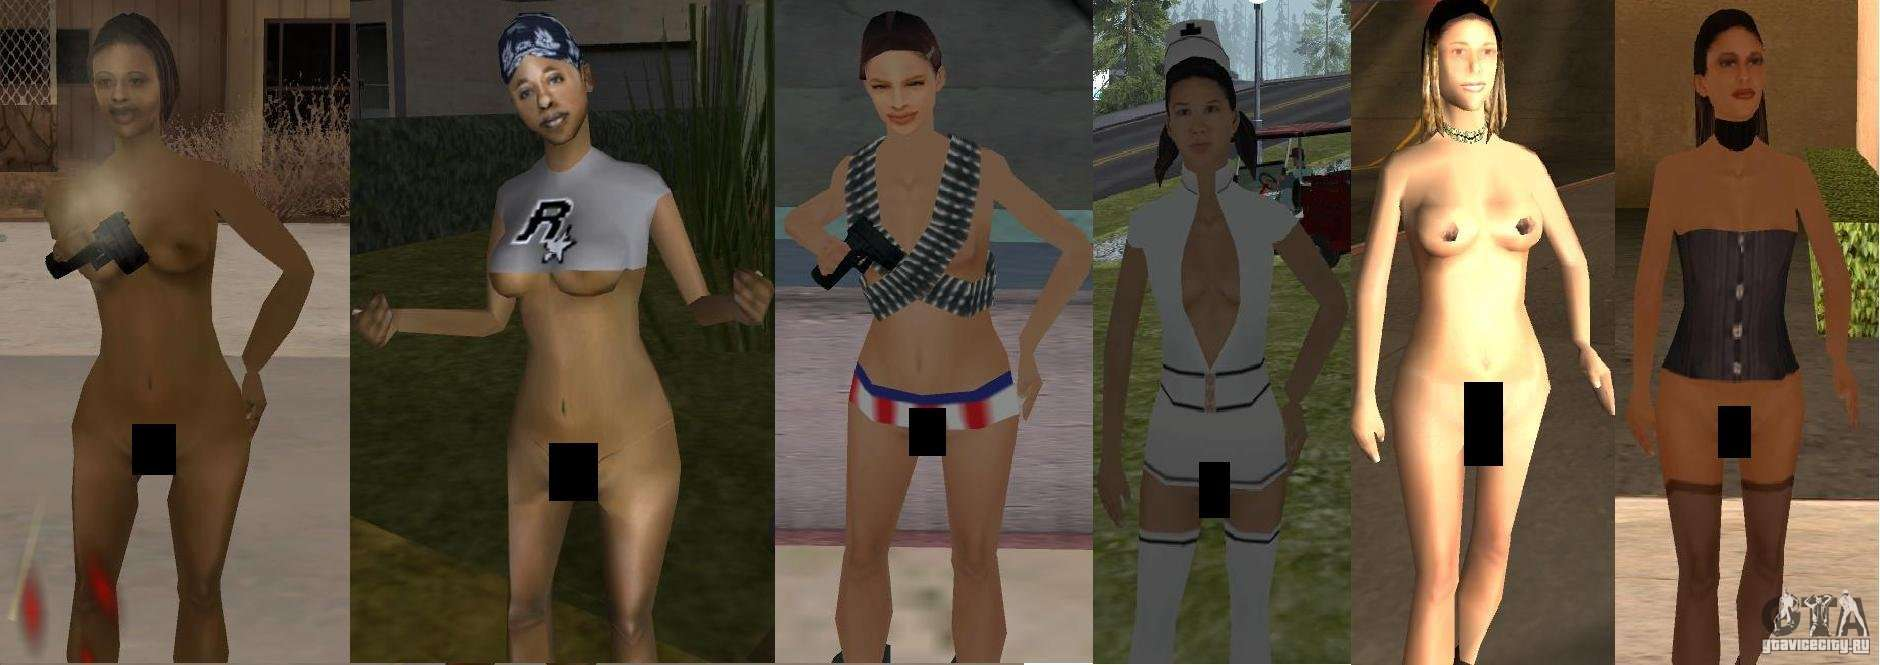 Gta san andreas sexiest clothes compared to most unsexy clothes according to game value